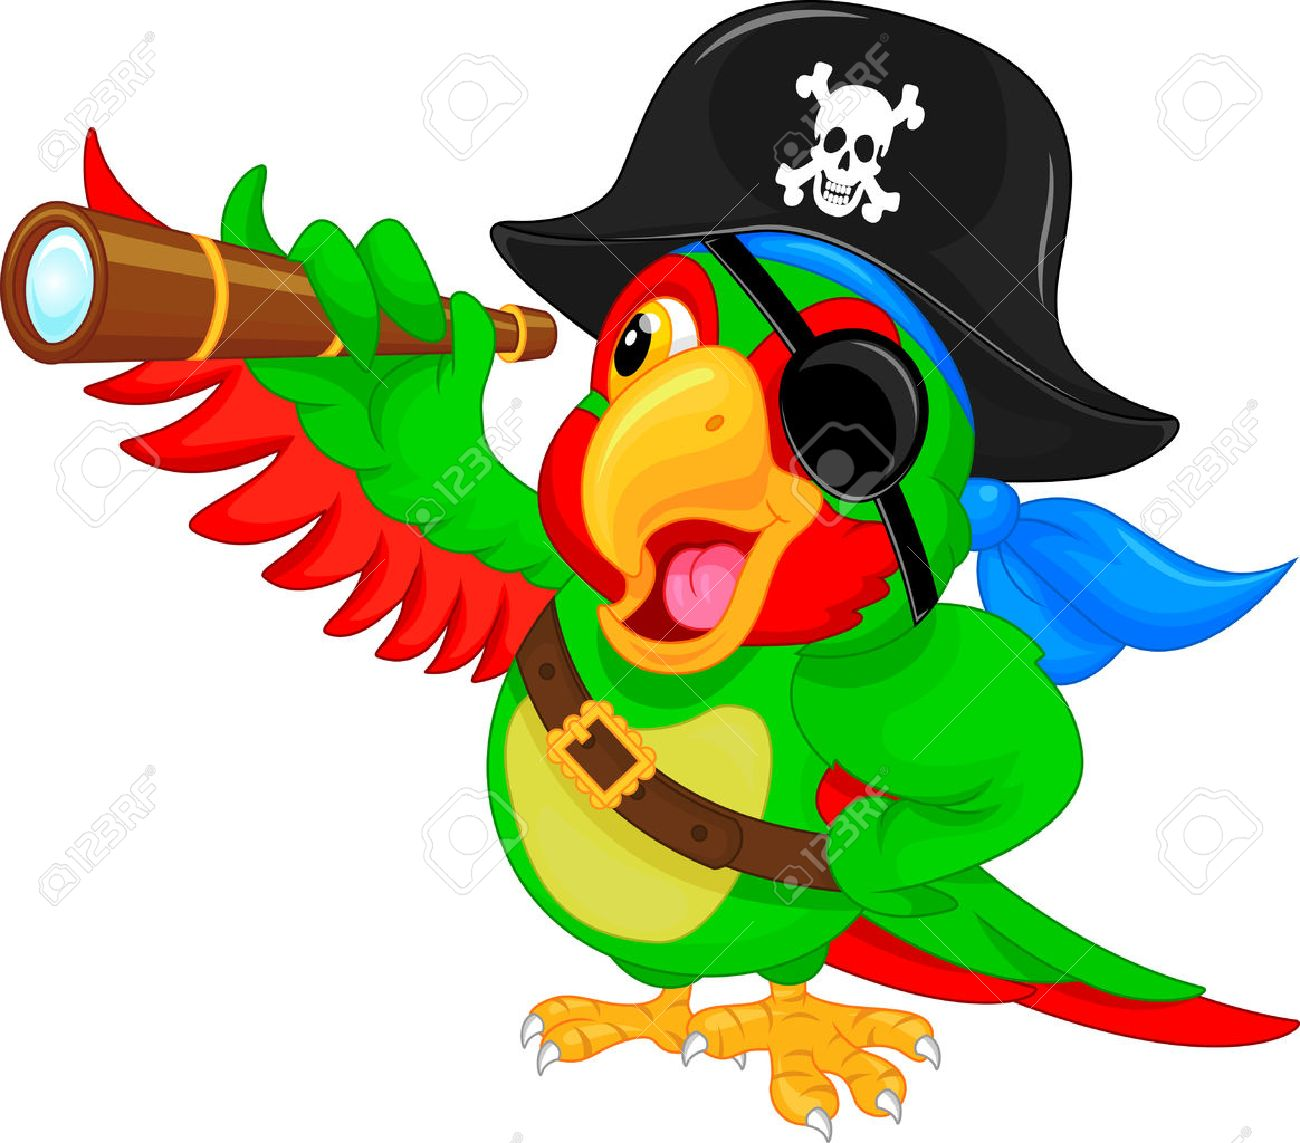 Pirate Clipart Stock Photos Images. Royalty Free Pirate Clipart ...